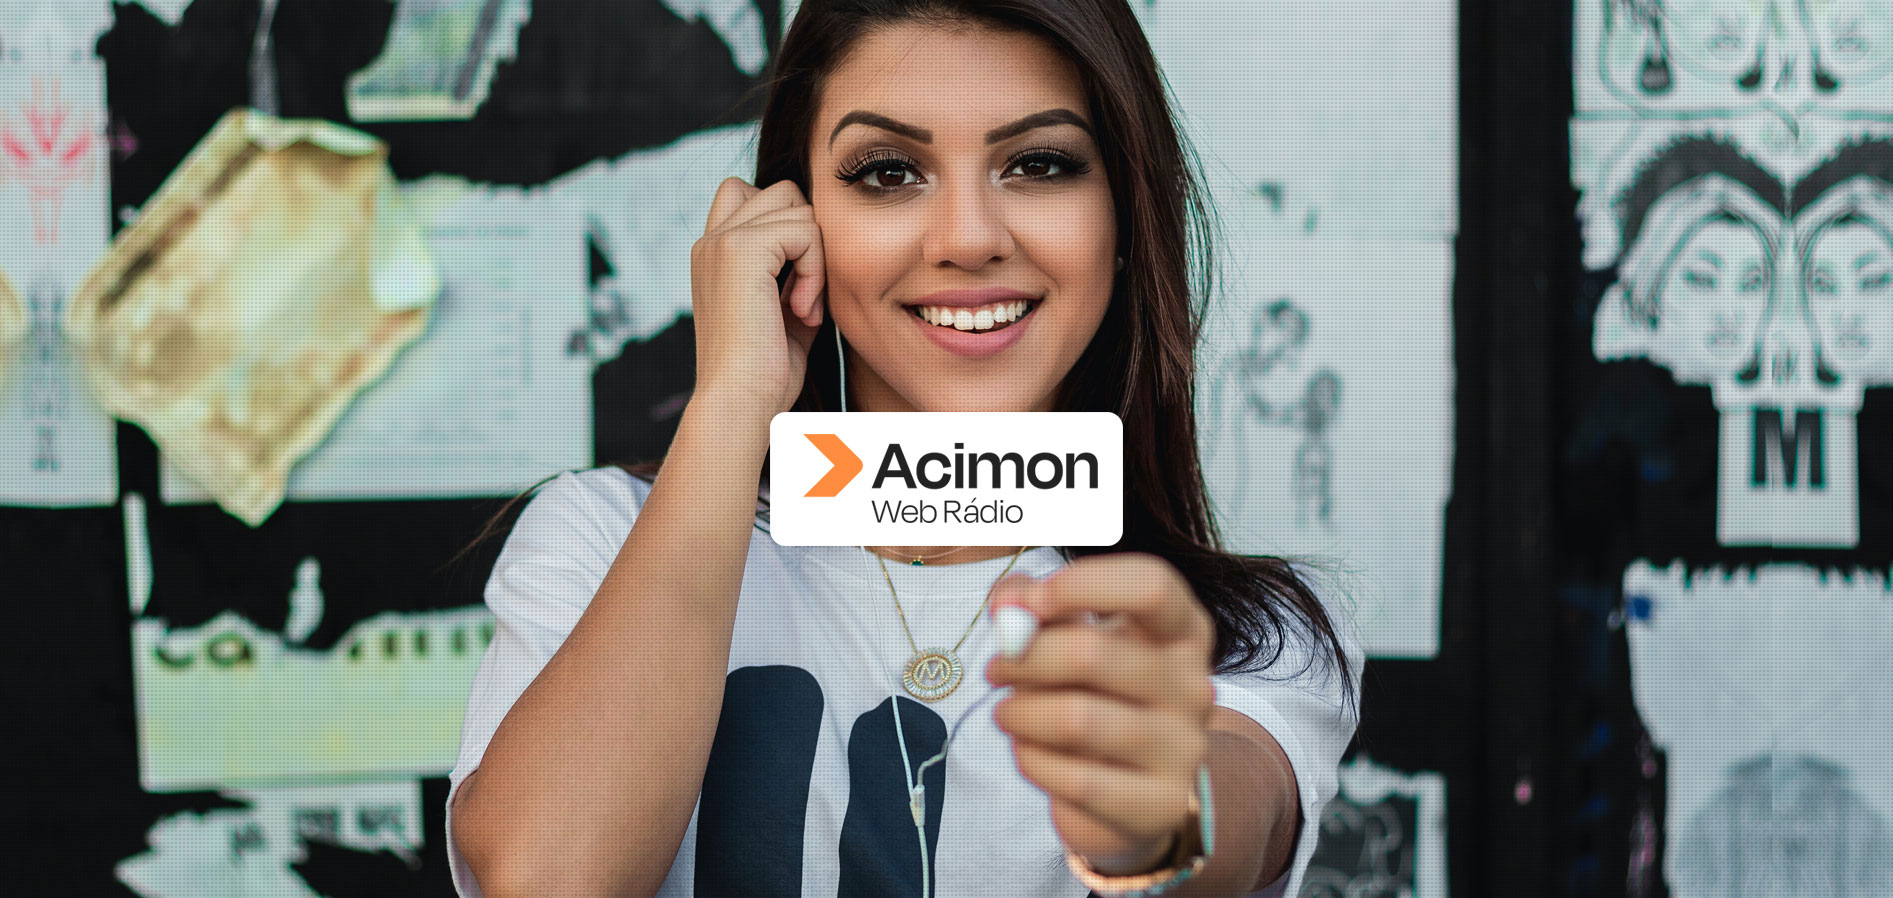 Acimon Web radio